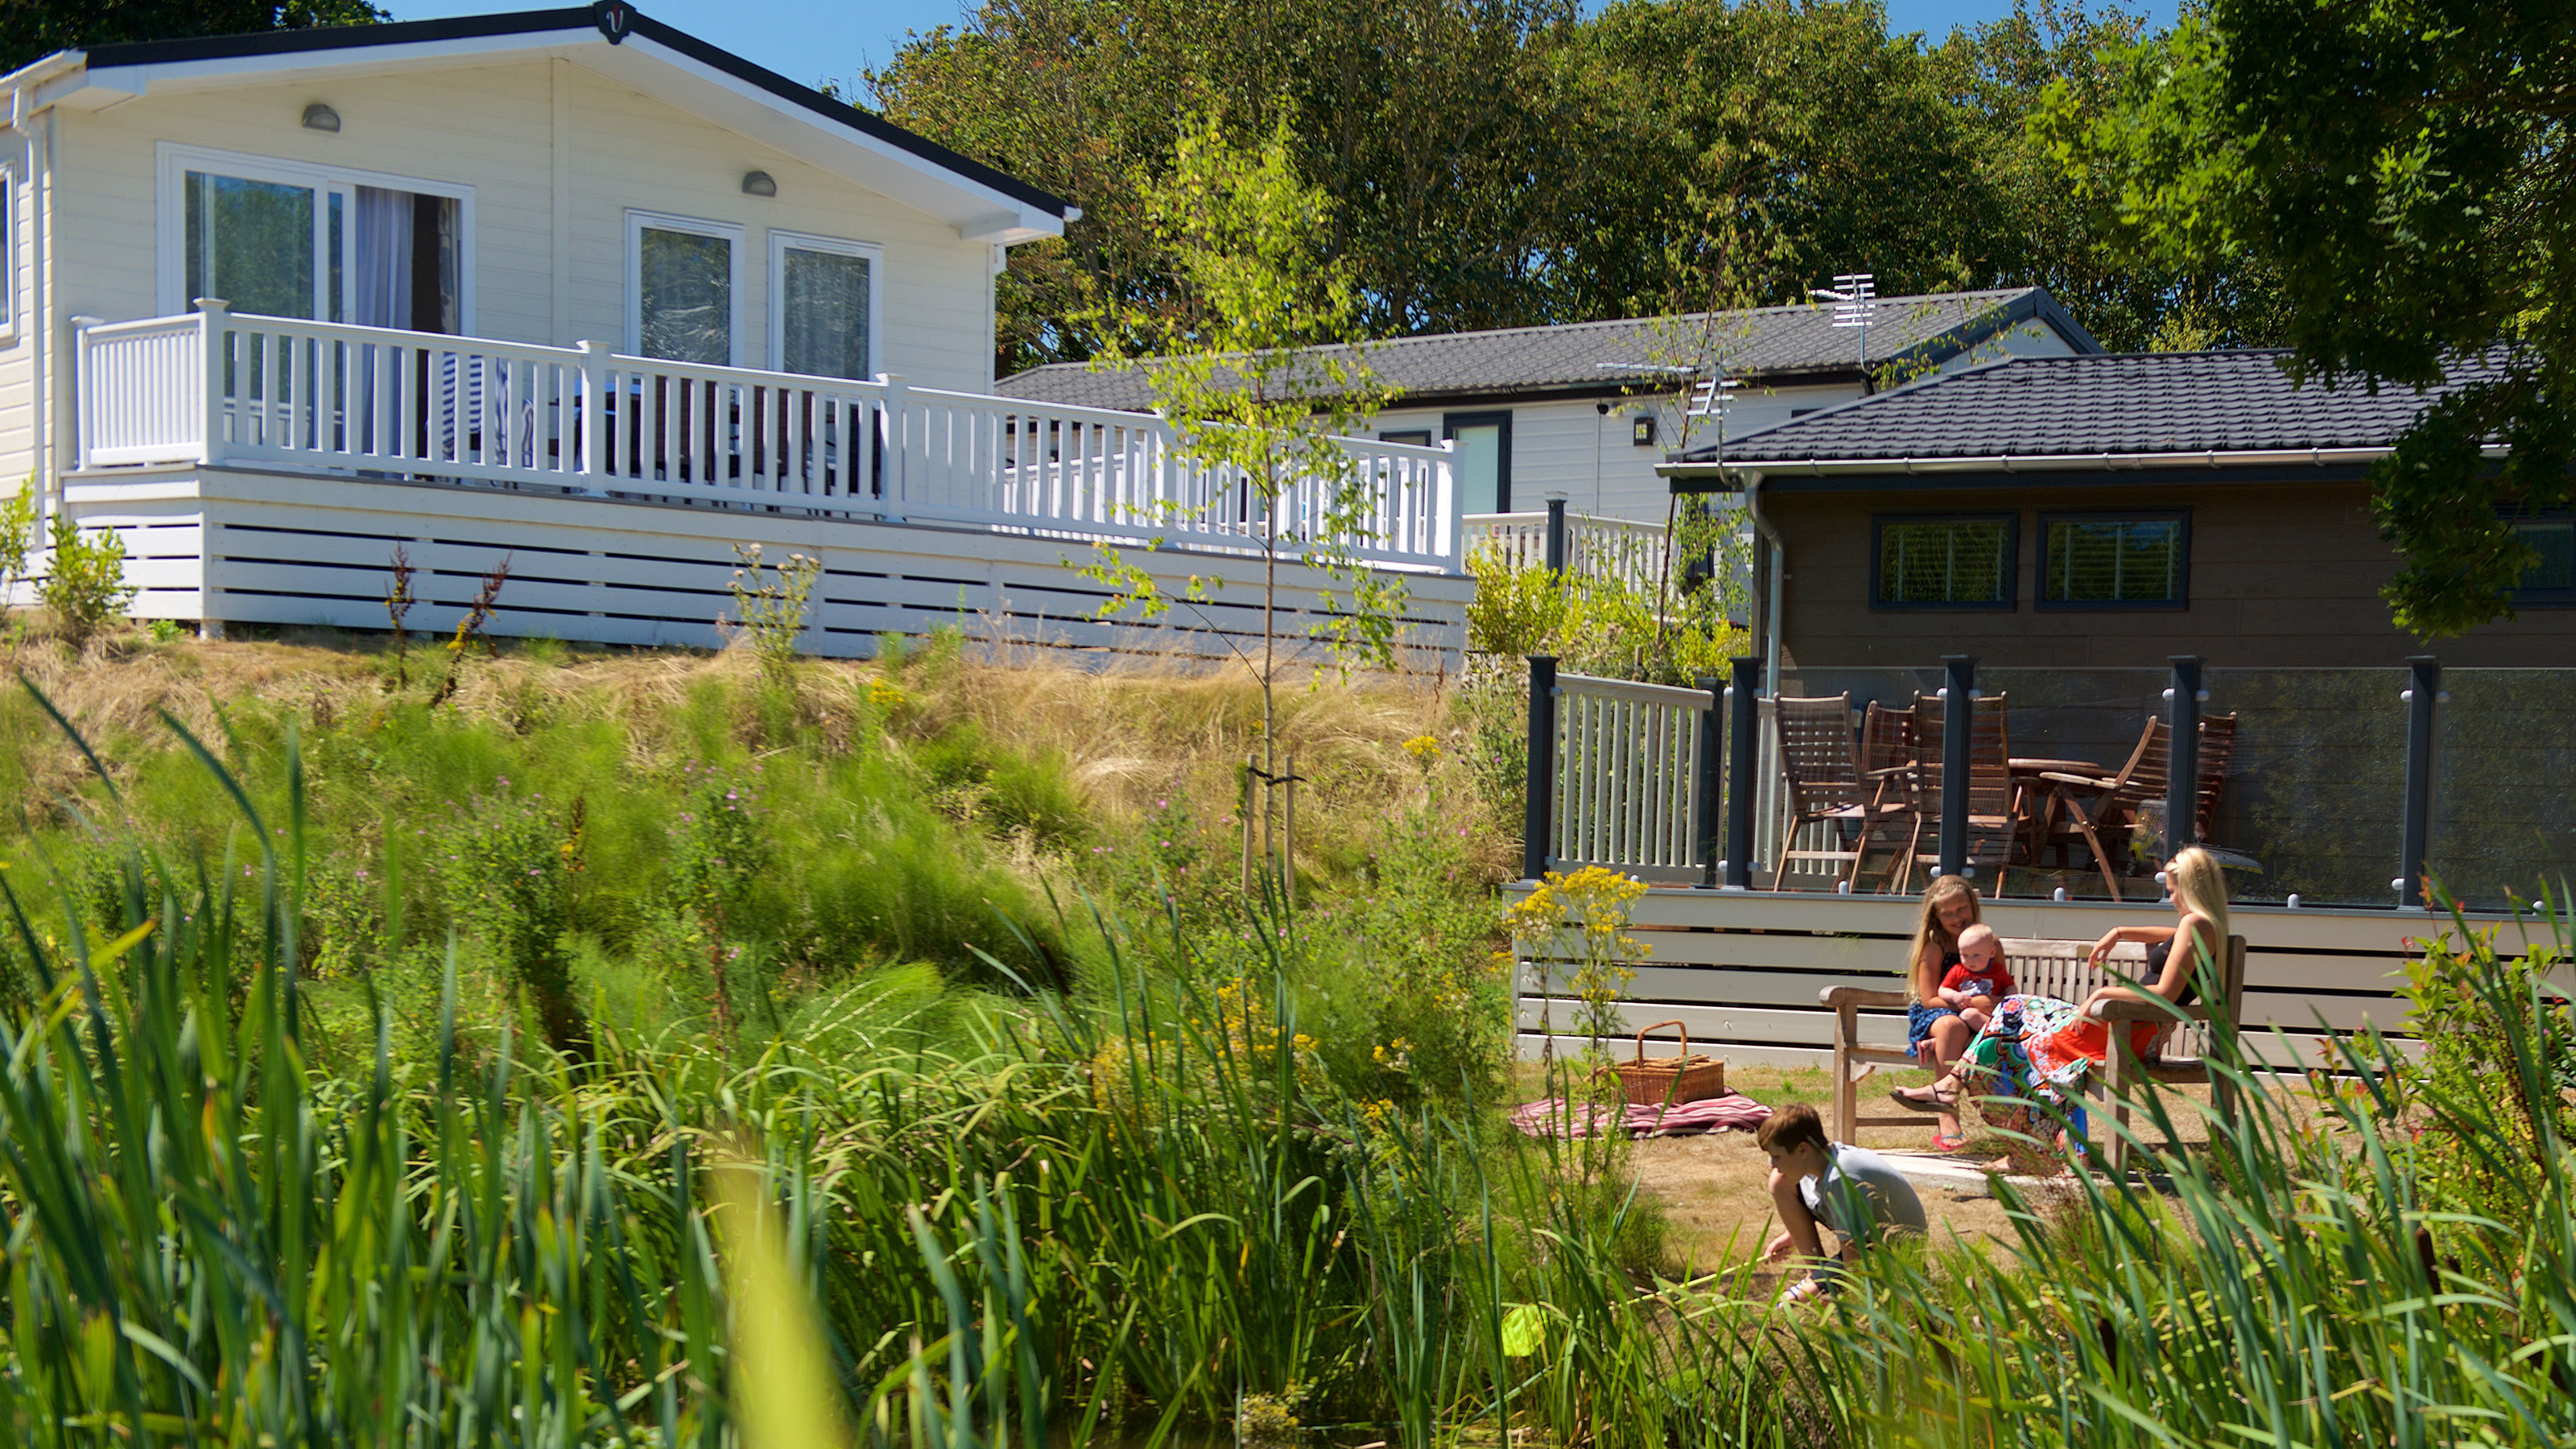 Children Relaxing Outside Holiday Home Summer Picnic